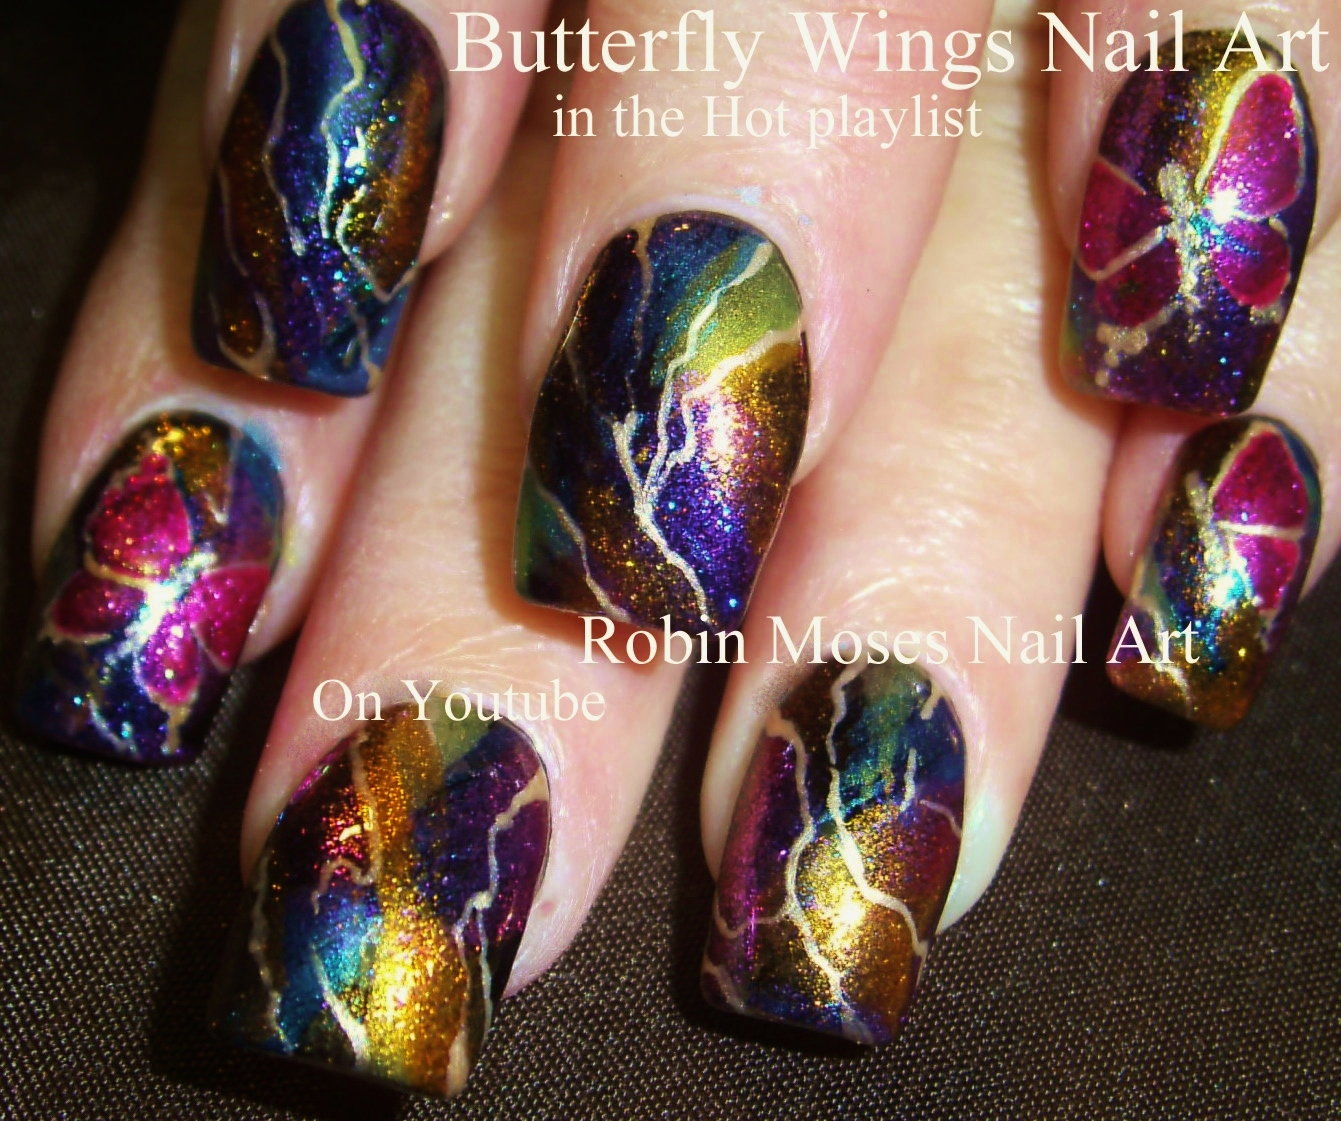 Flower Nails Playlist Of Easy Nail Art Tutorials Fl Designs Ideas For Beginners To Advanced Techs